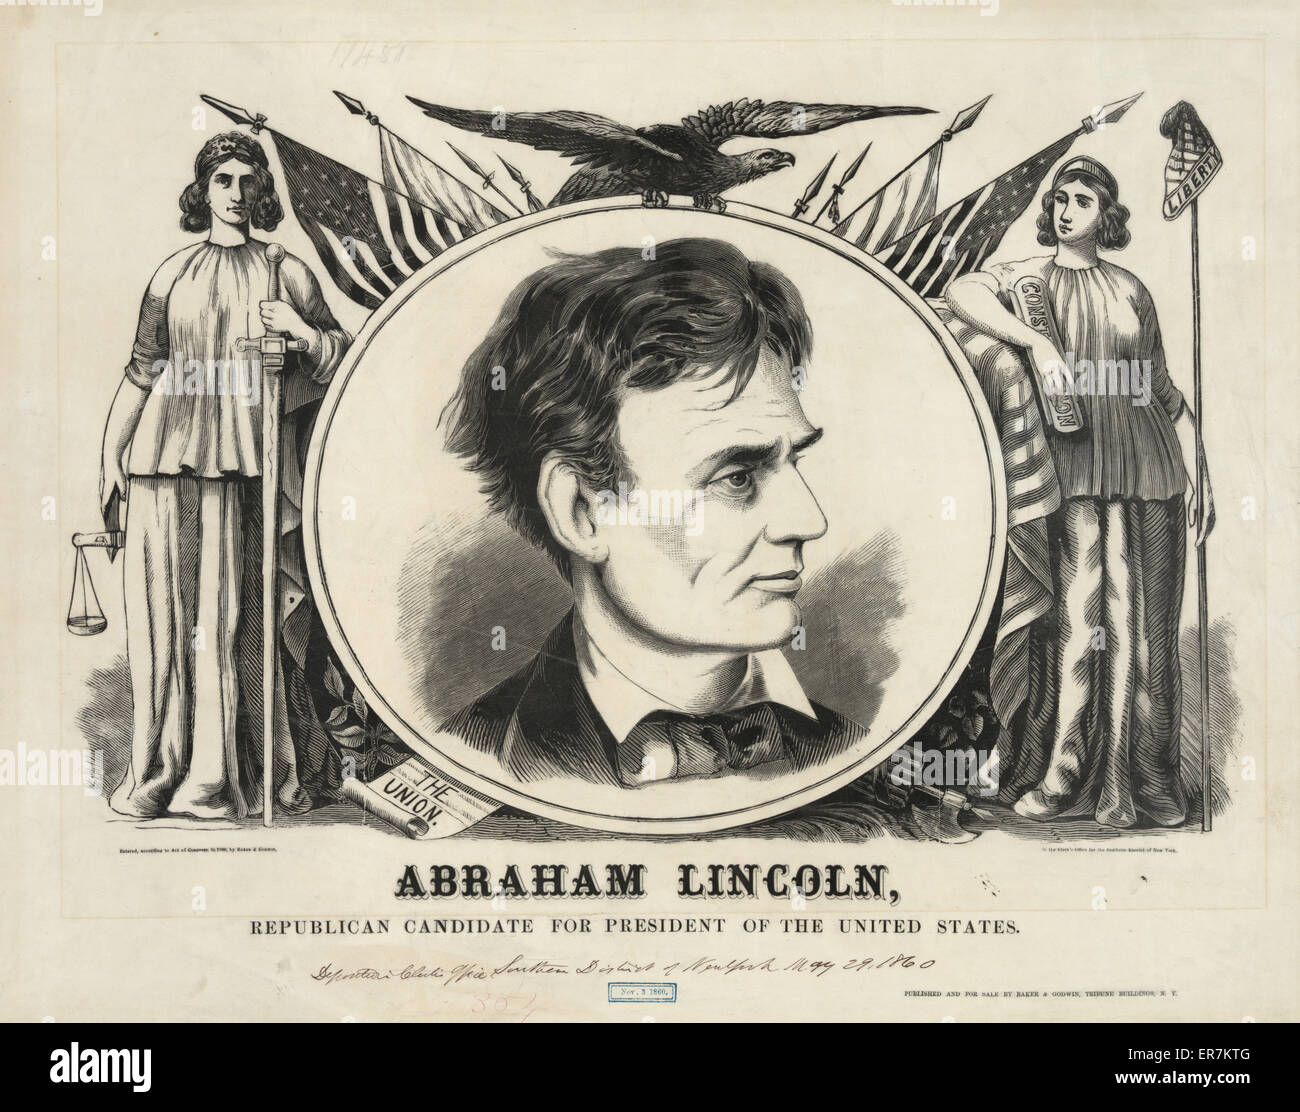 Abraham Lincoln, Republican candidate for president of the United States. A print for a large campaign banner or - Stock Image